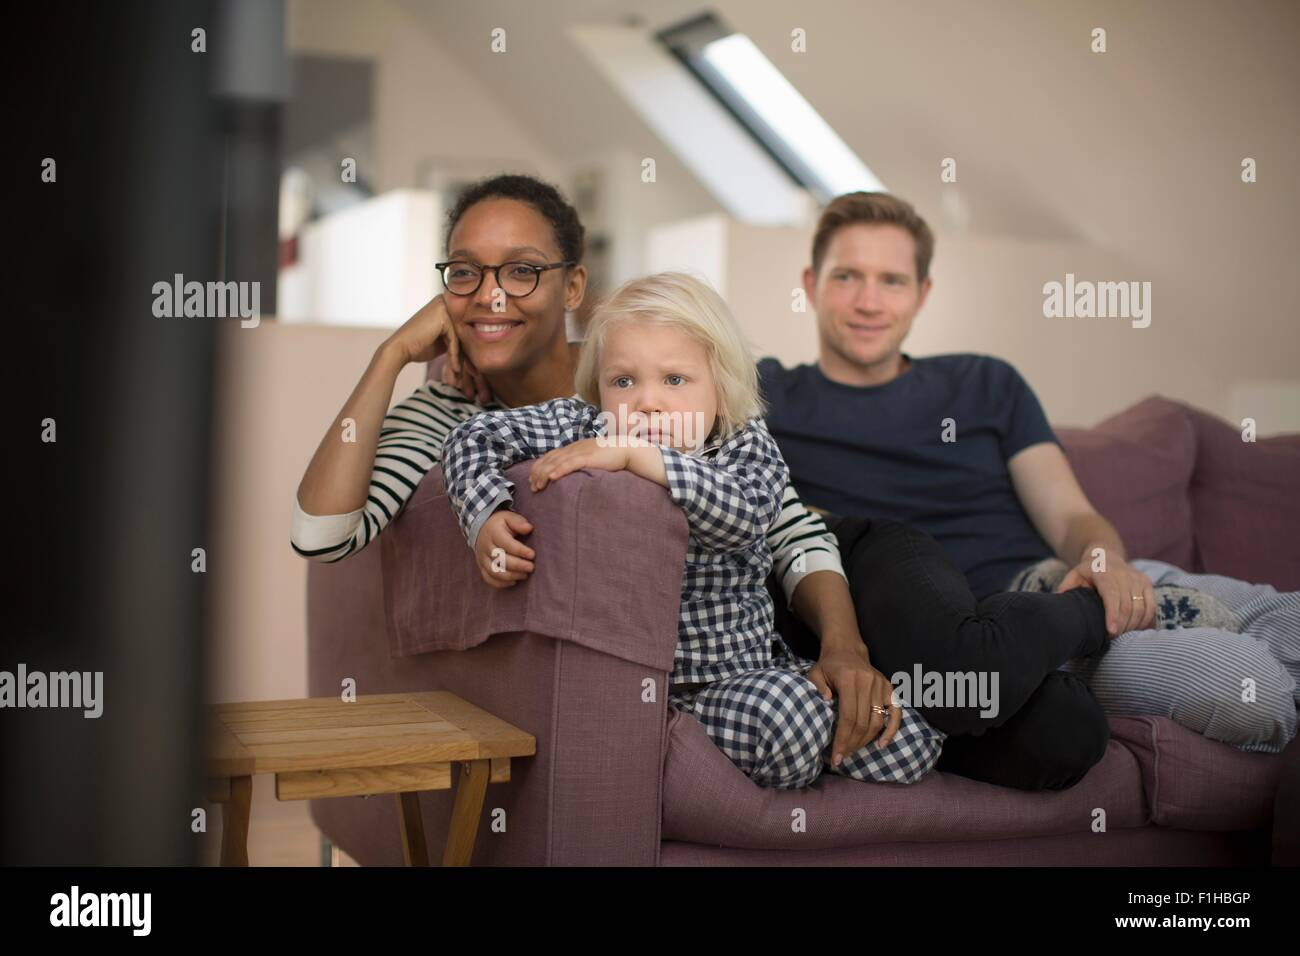 Family sitting on sofa watching television - Stock Image